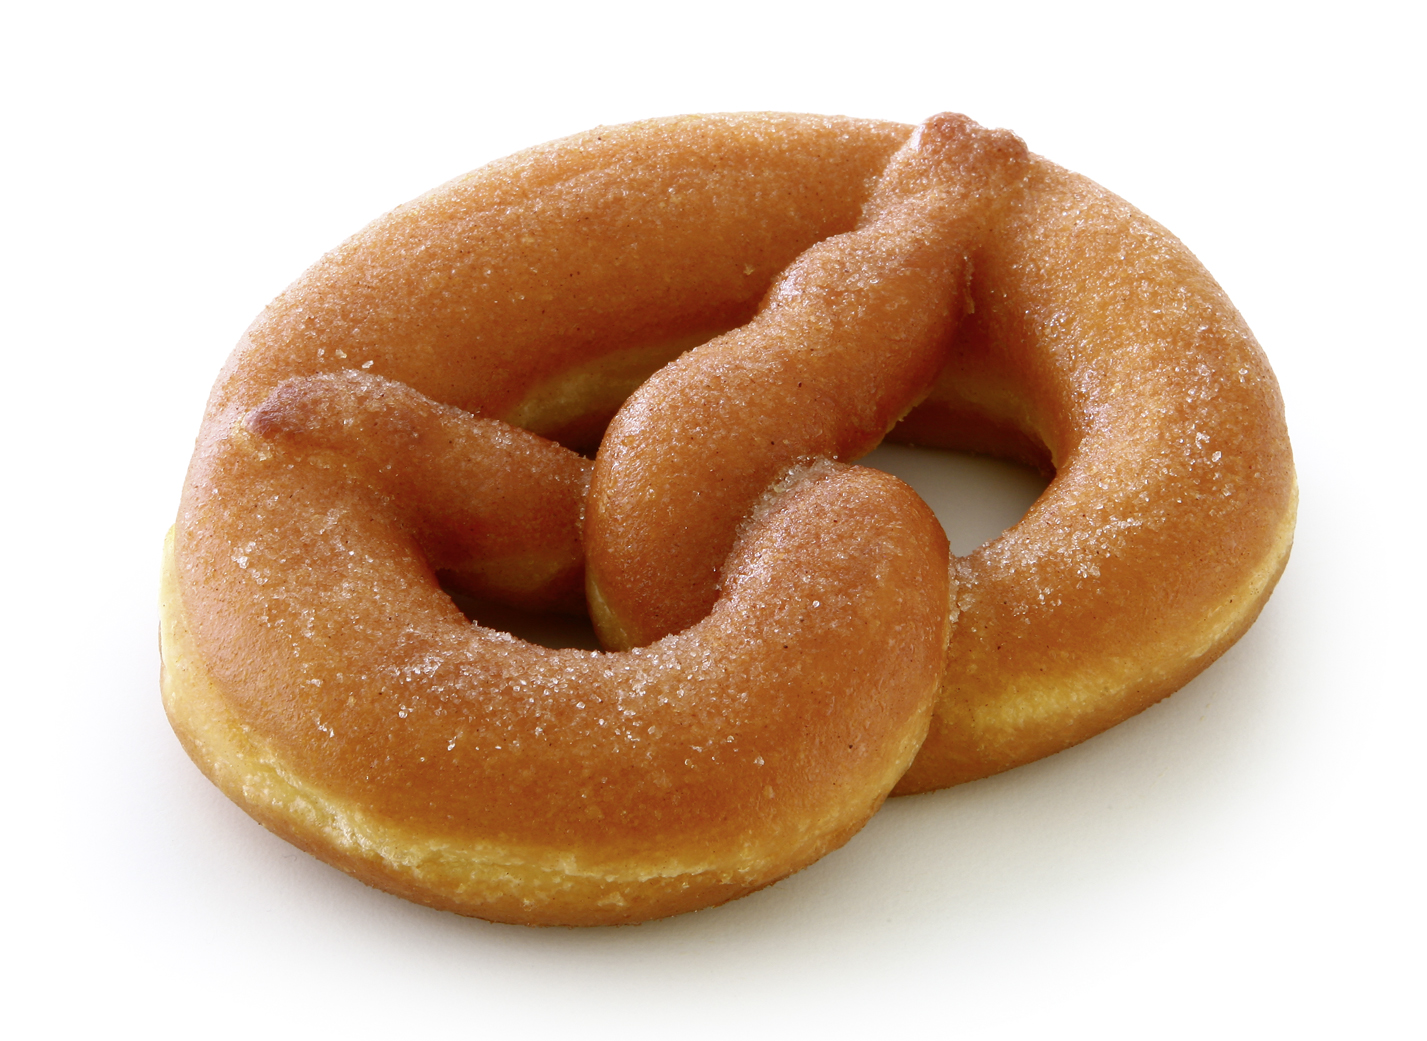 Doughnut Pretzel - Simmering pastry in pretzel shape/ sprinkled with cinnamon and sugar/ thaw only